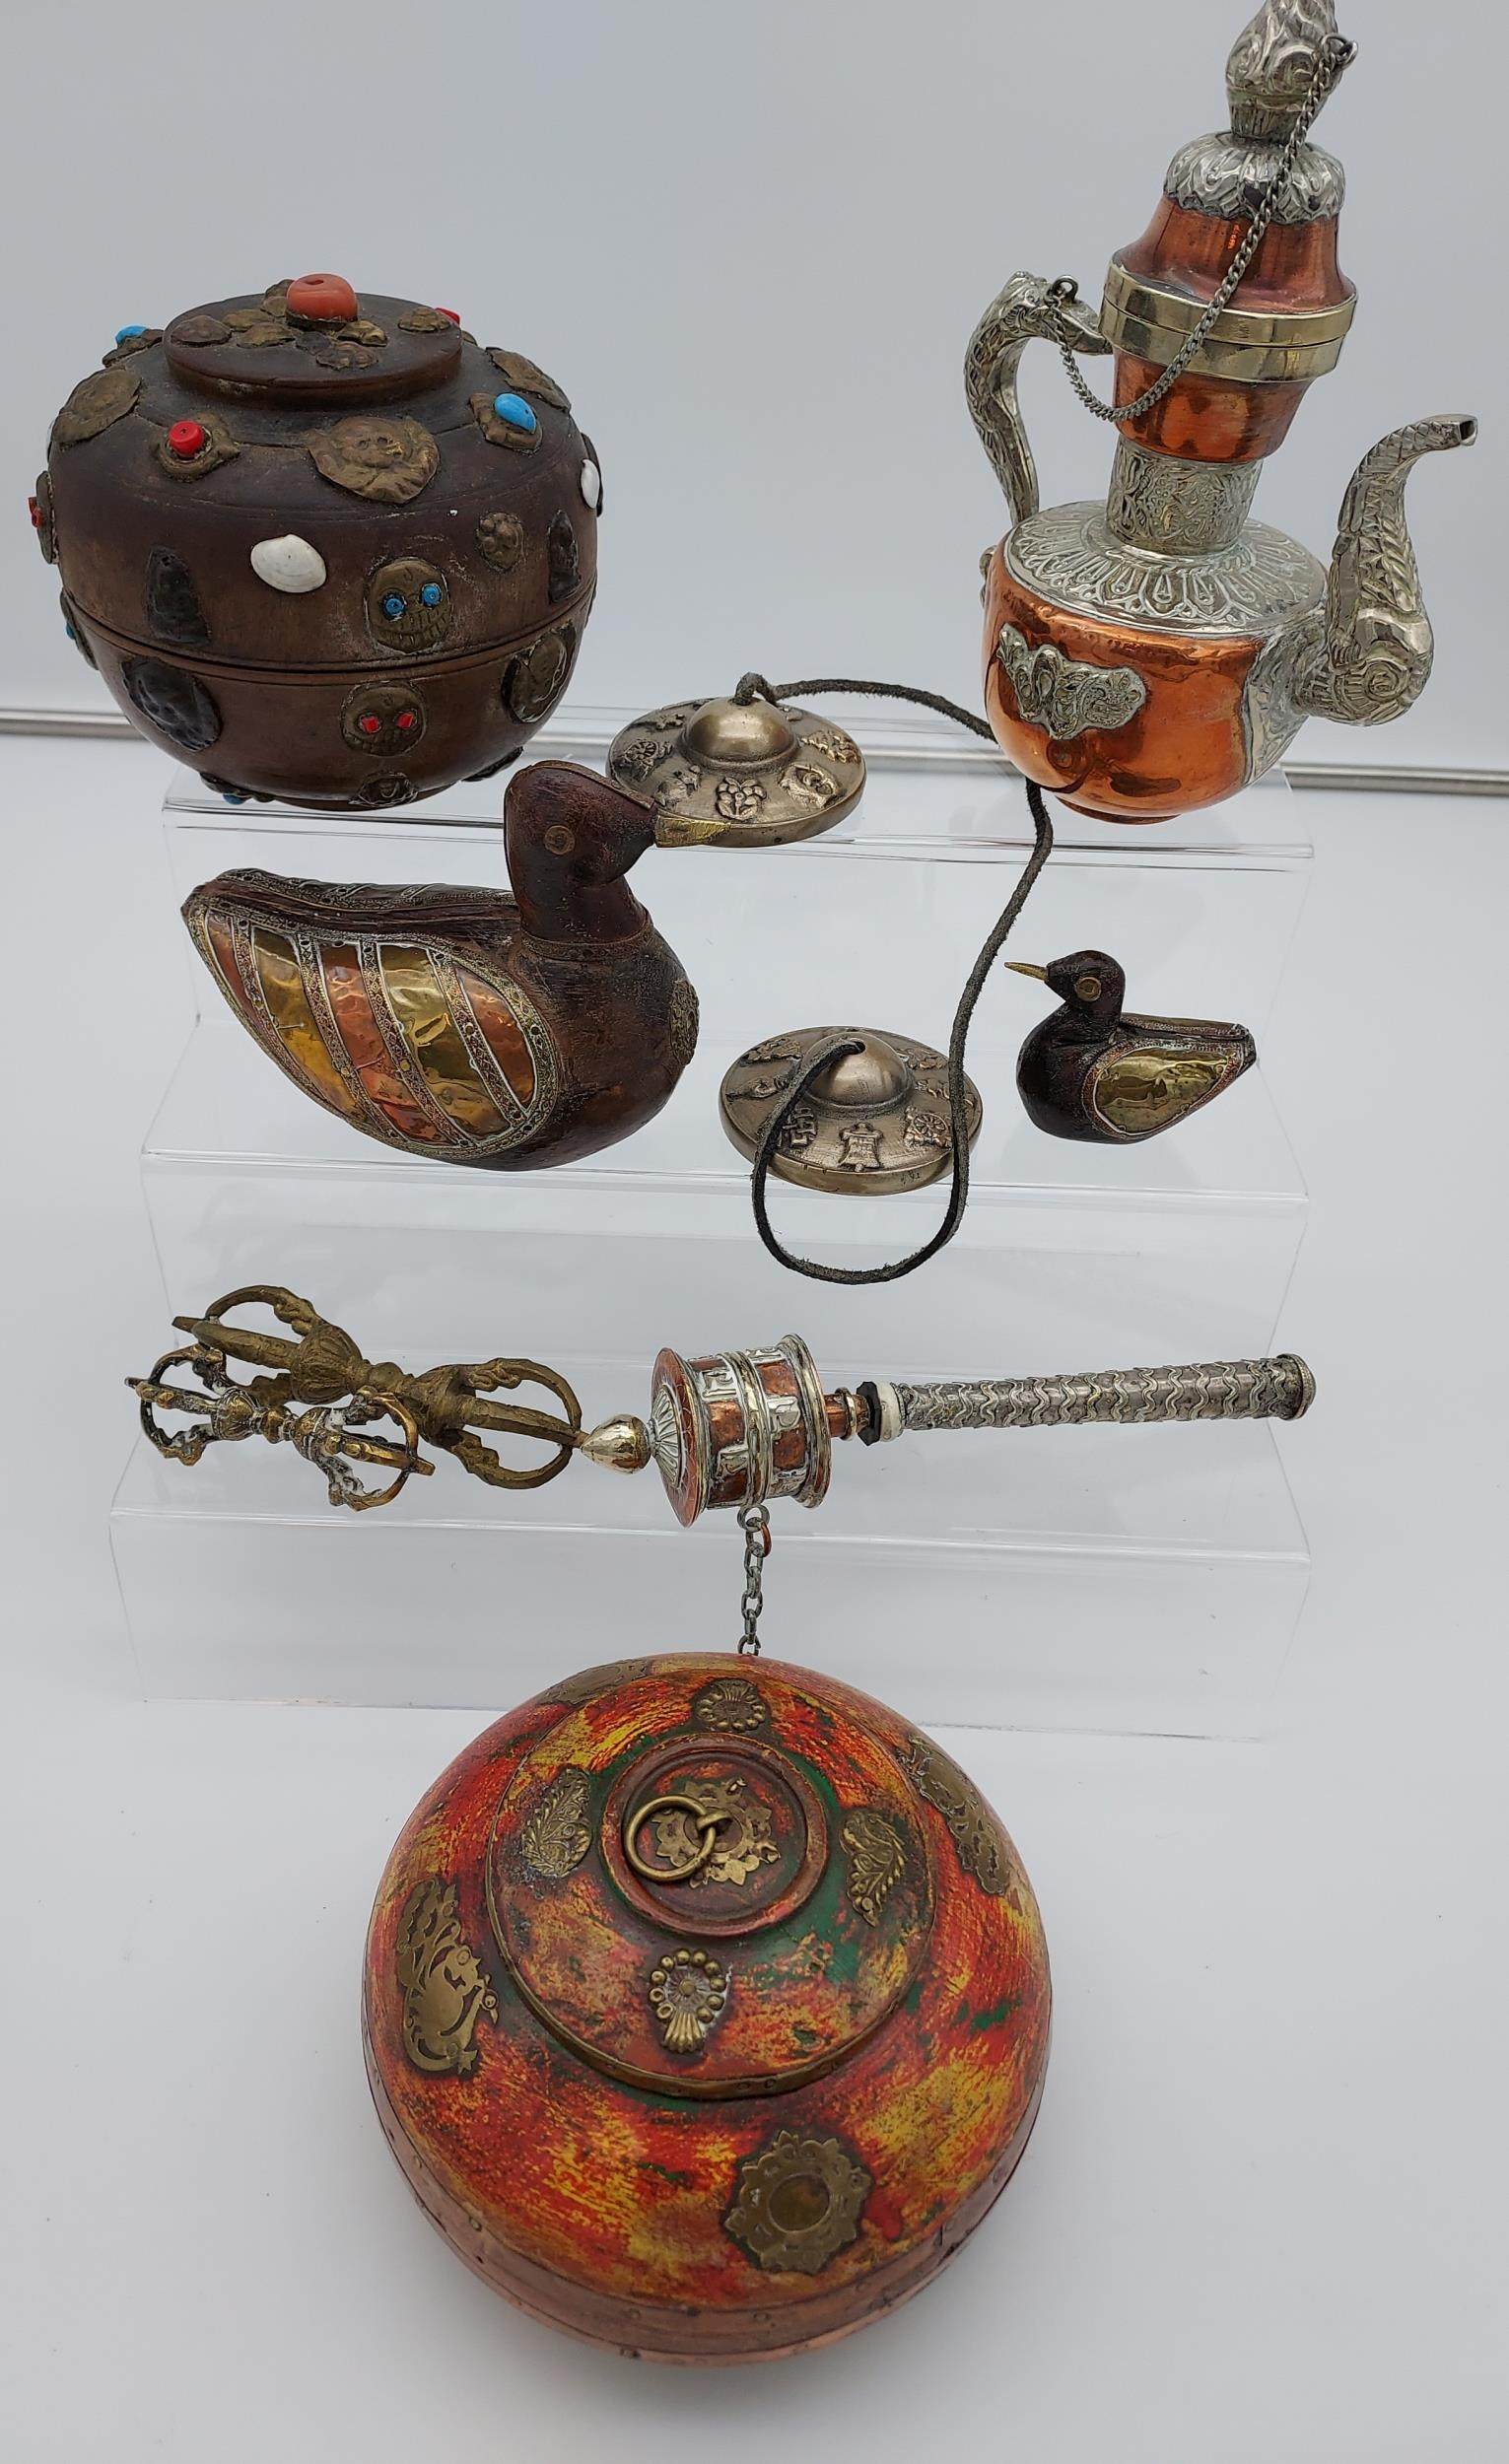 A collection of Tibetan antiques to include silver and copper teapot, prayer wheel, meditation chime